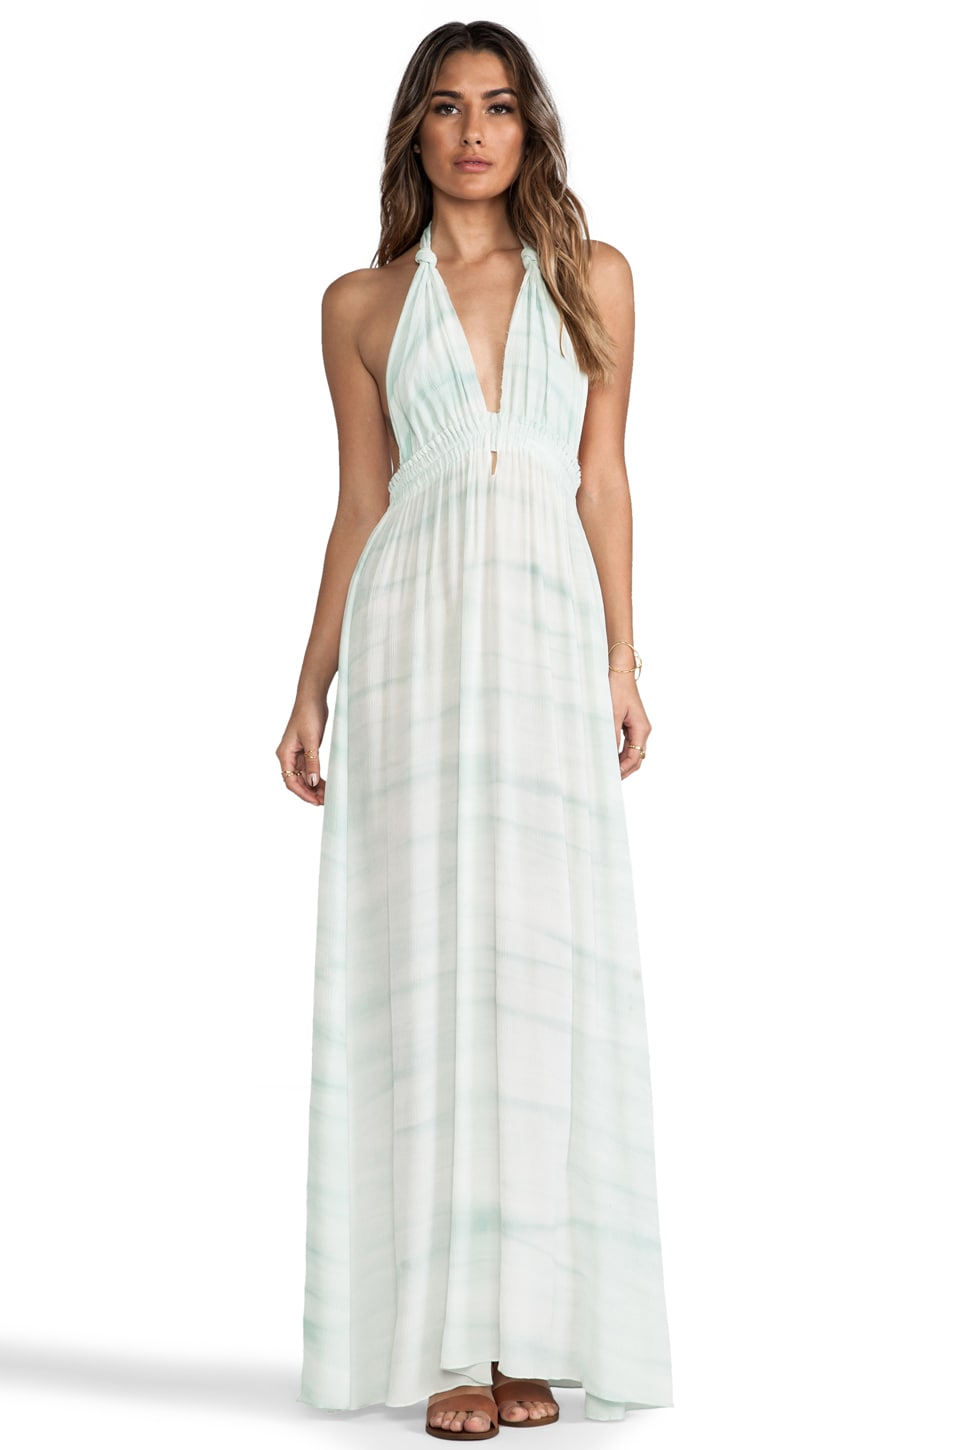 LoveShackFancy Love Dress in Faded Seafoam